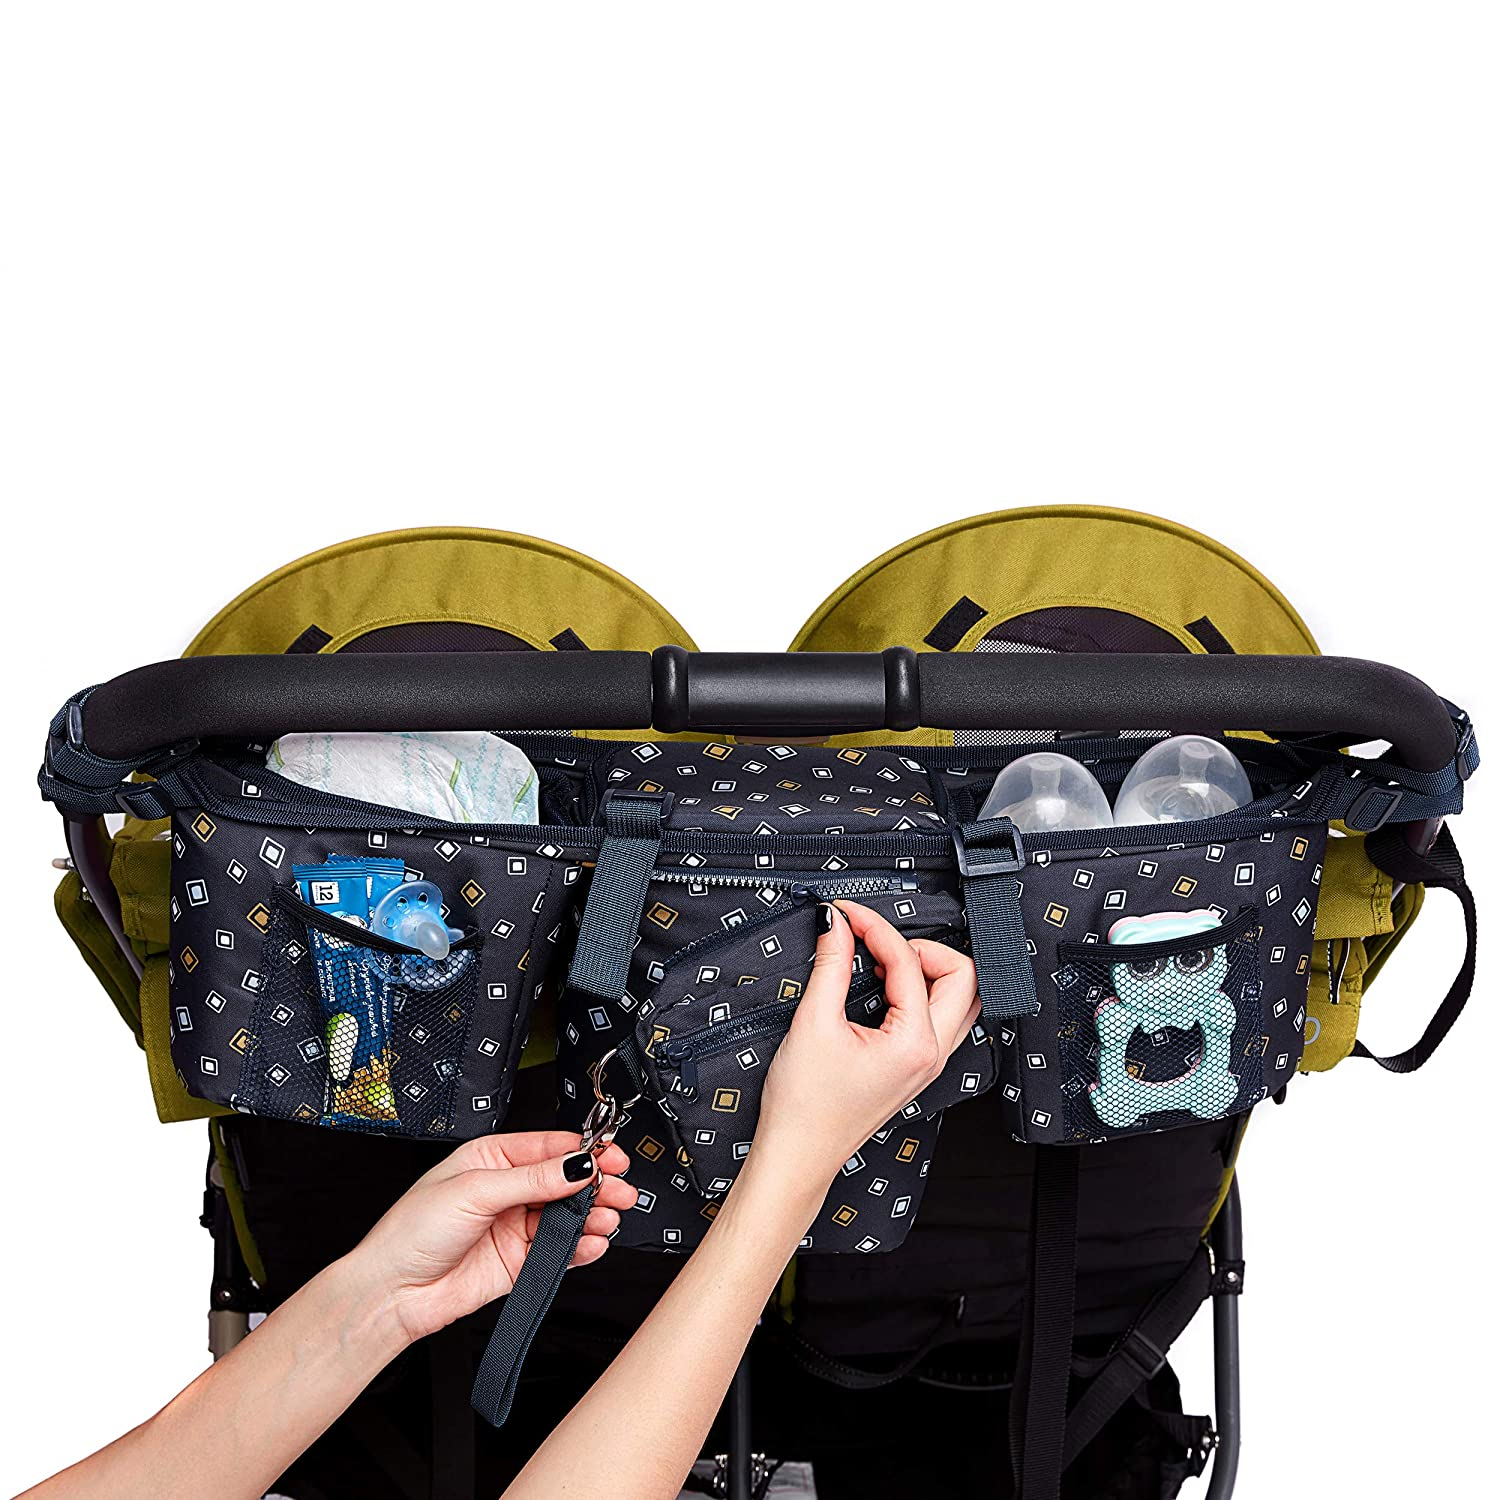 Double Stroller Organizer - Stroller Caddy for Double and Twin Strollers